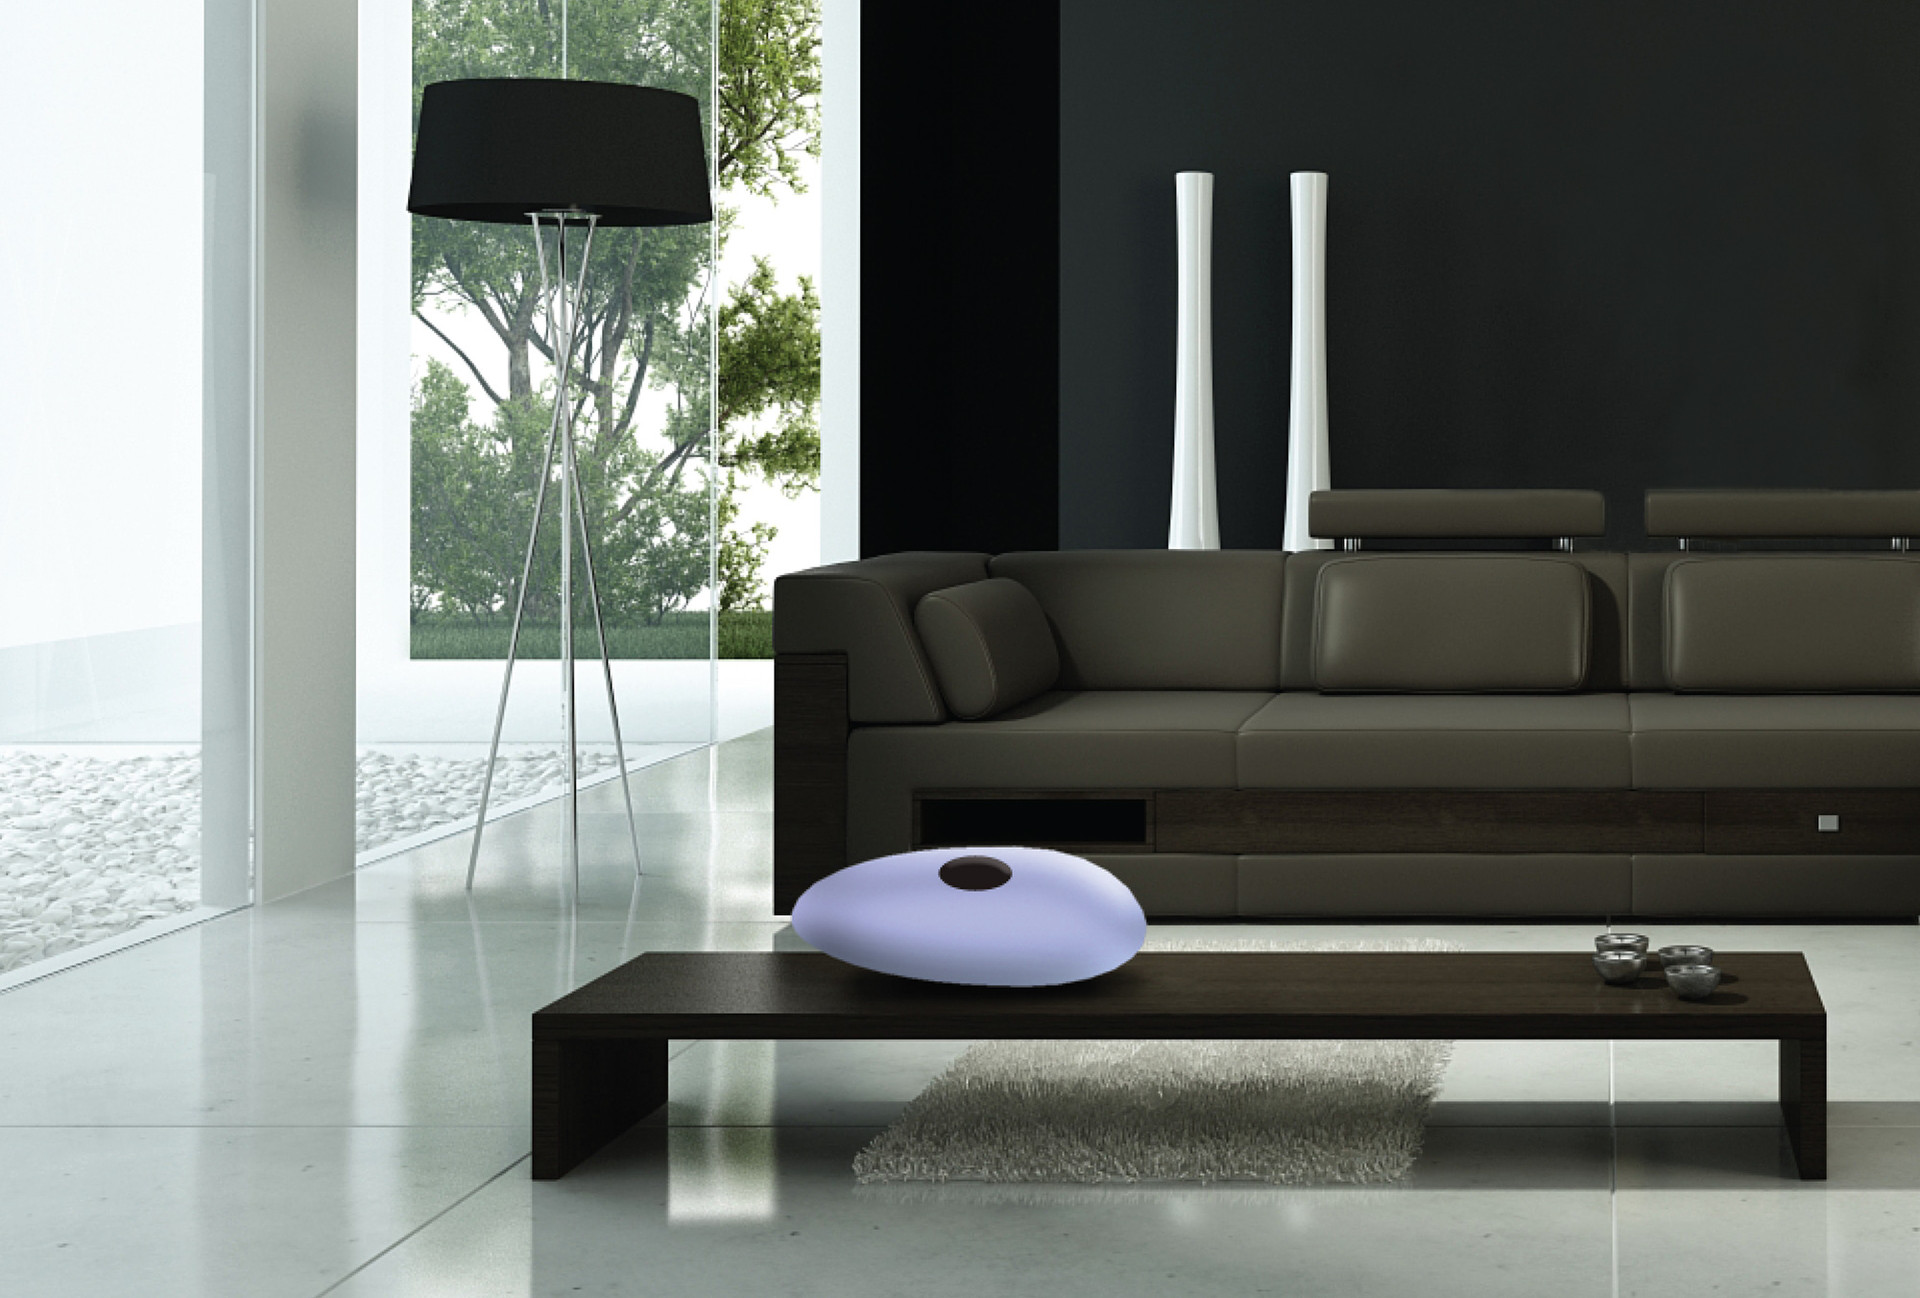 The lamp is a statement piece, which suits well in modern style interiors.